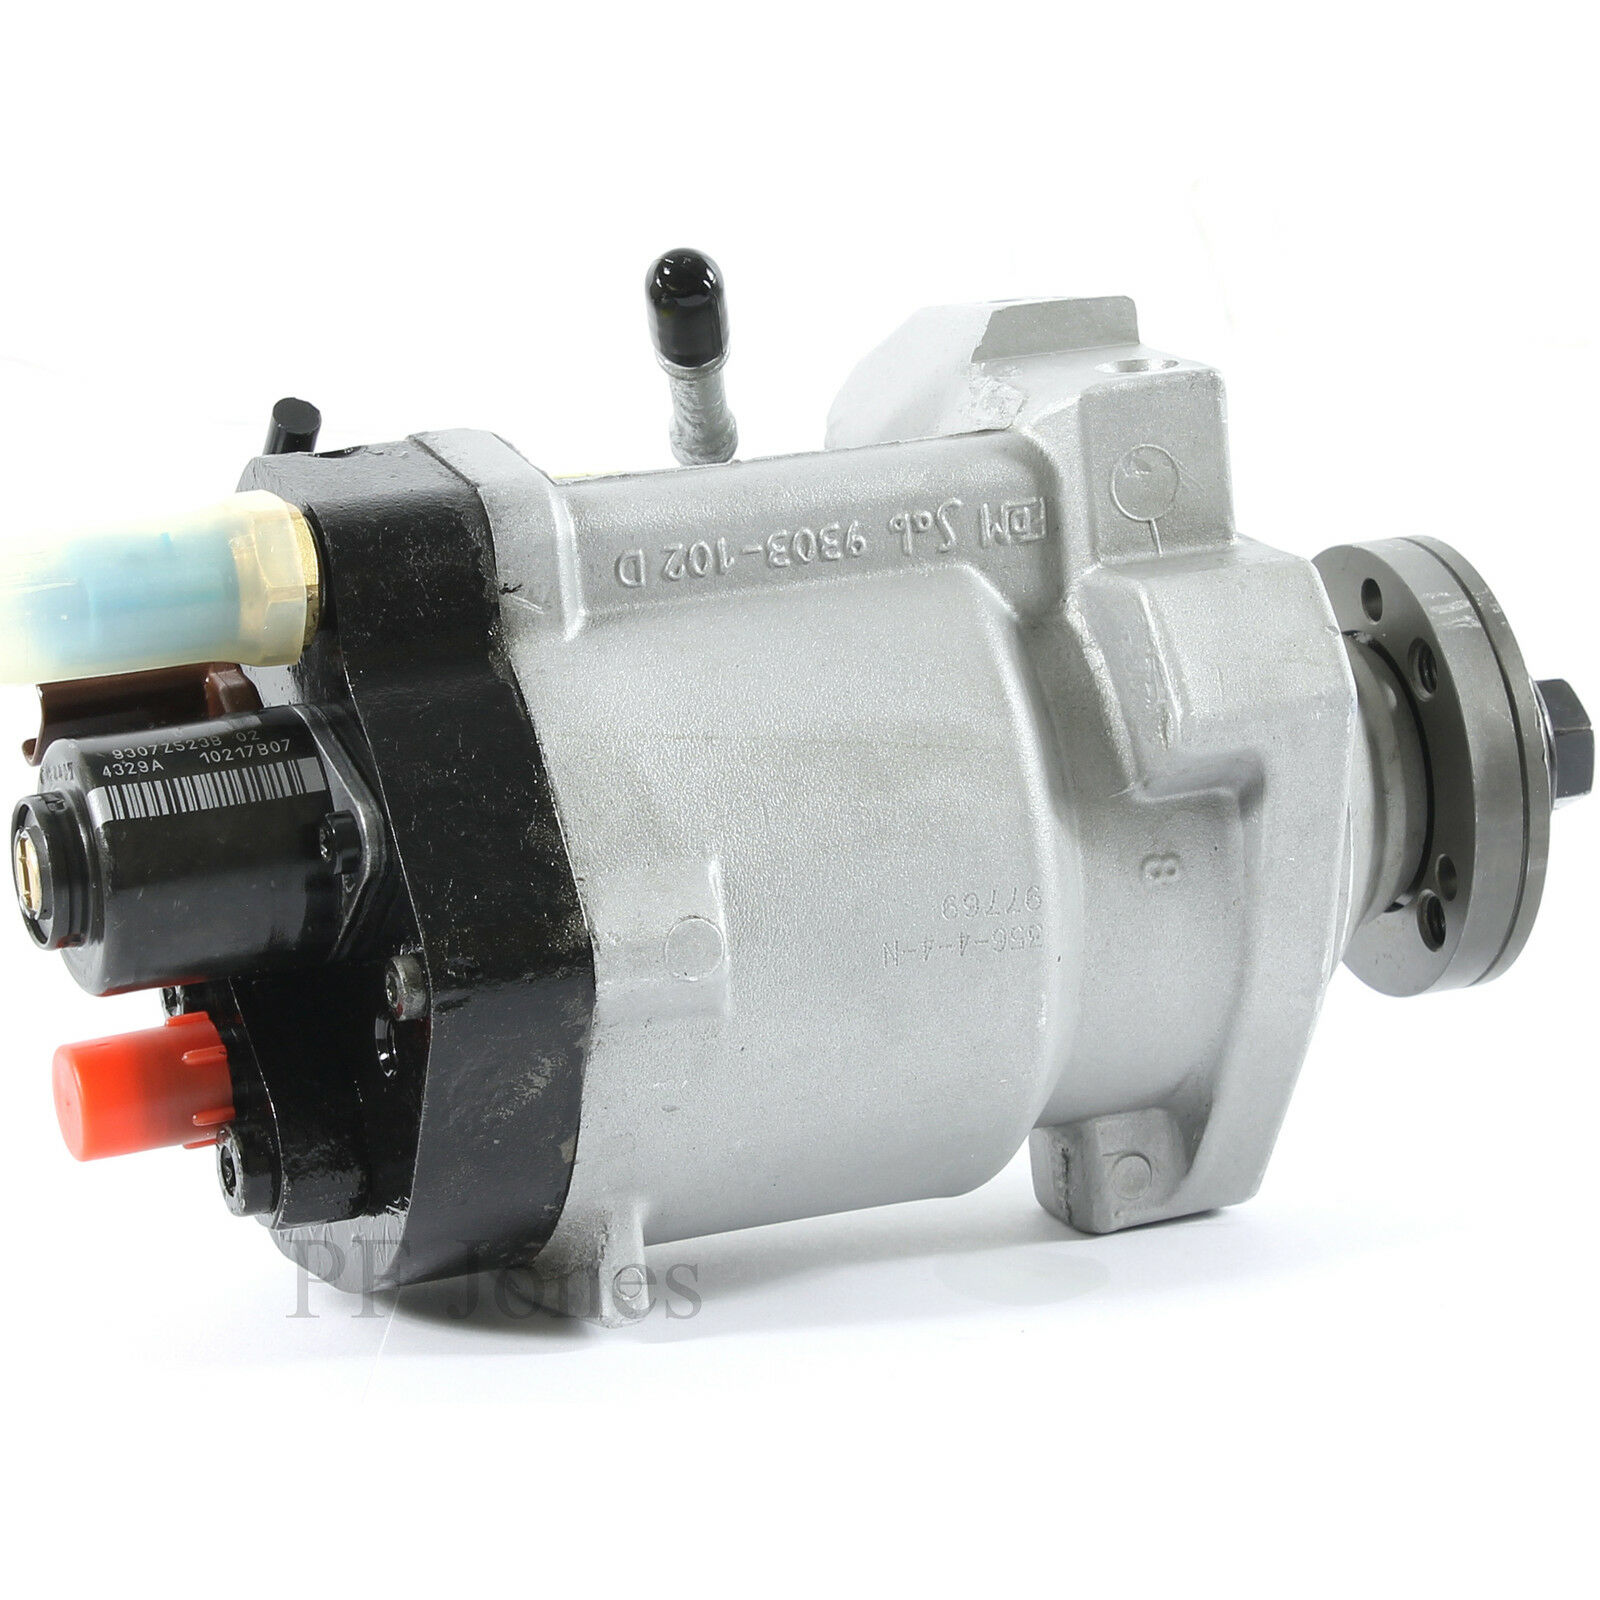 Reconditioned delphi diesel fuel pump 9044a016a 60 cash back see listing